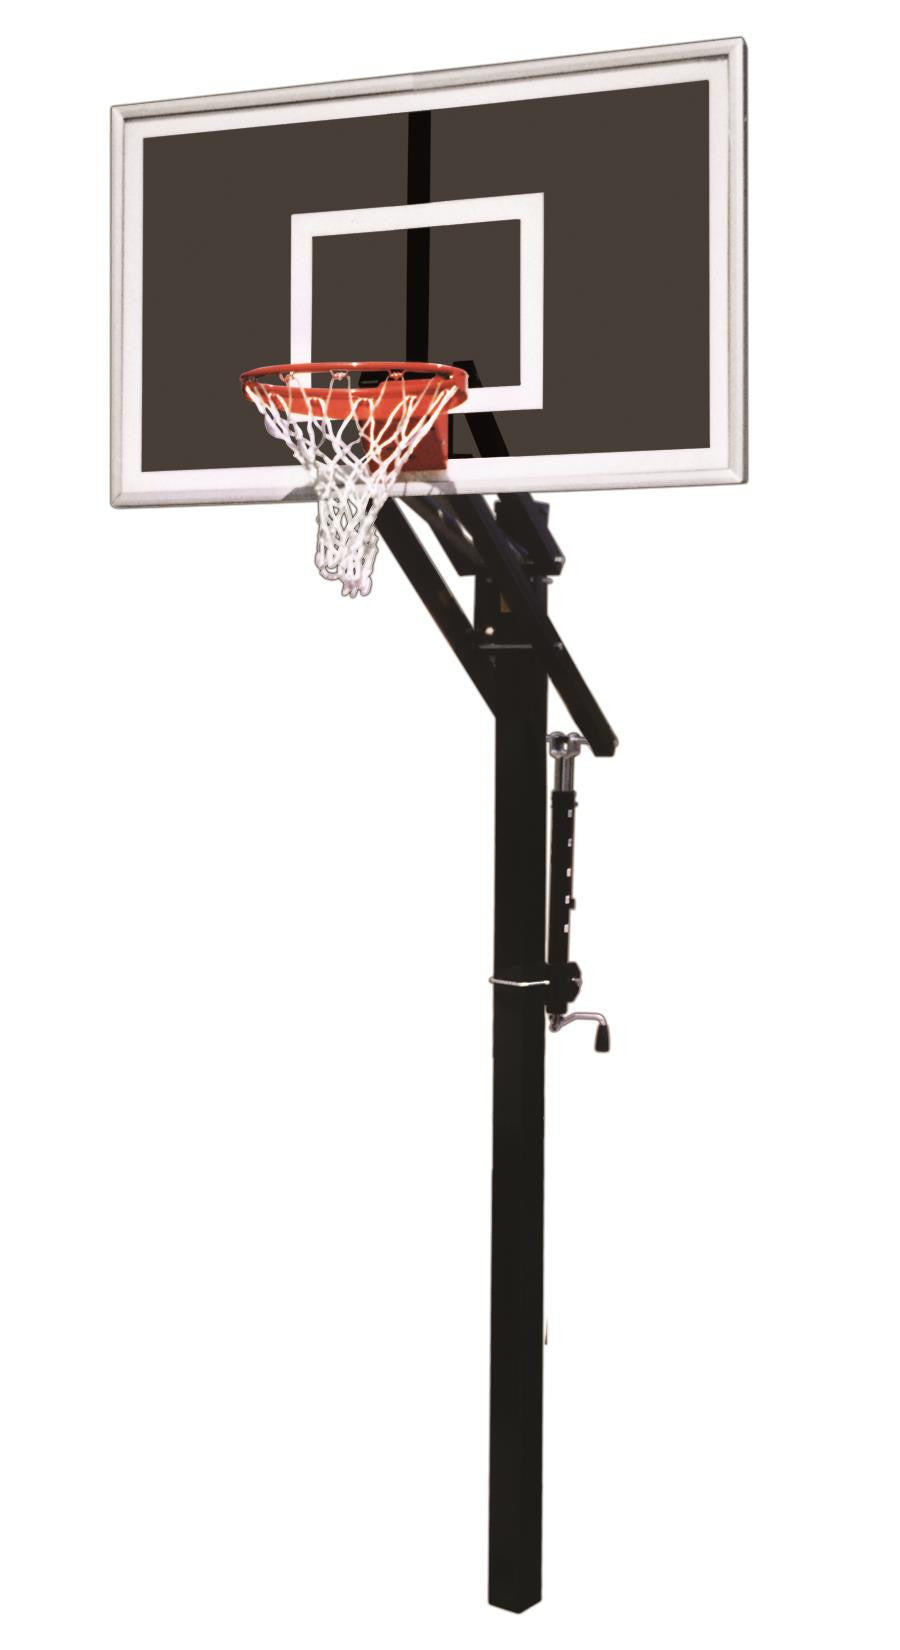 First Team Jam Eclipse In Ground Outdoor Adjustable Basketball Hoop 60 inch Smoked Tempered Glass